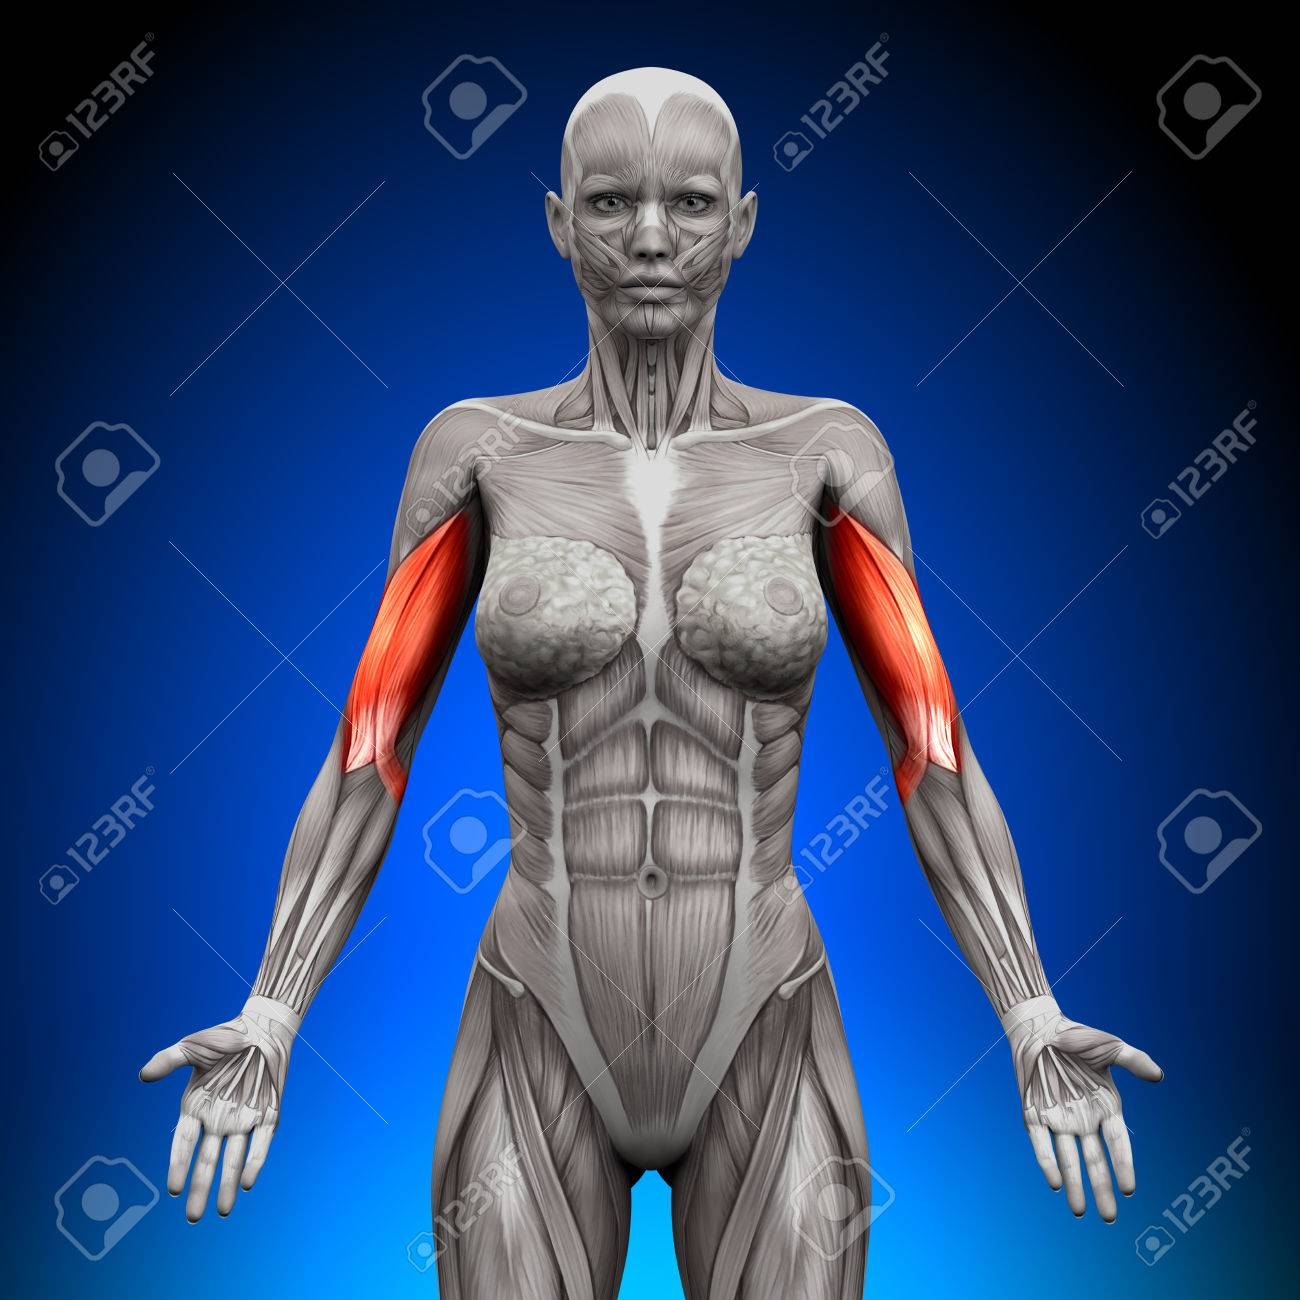 Biceps - Female Anatomy Muscles Stock Photo, Picture And Royalty ...